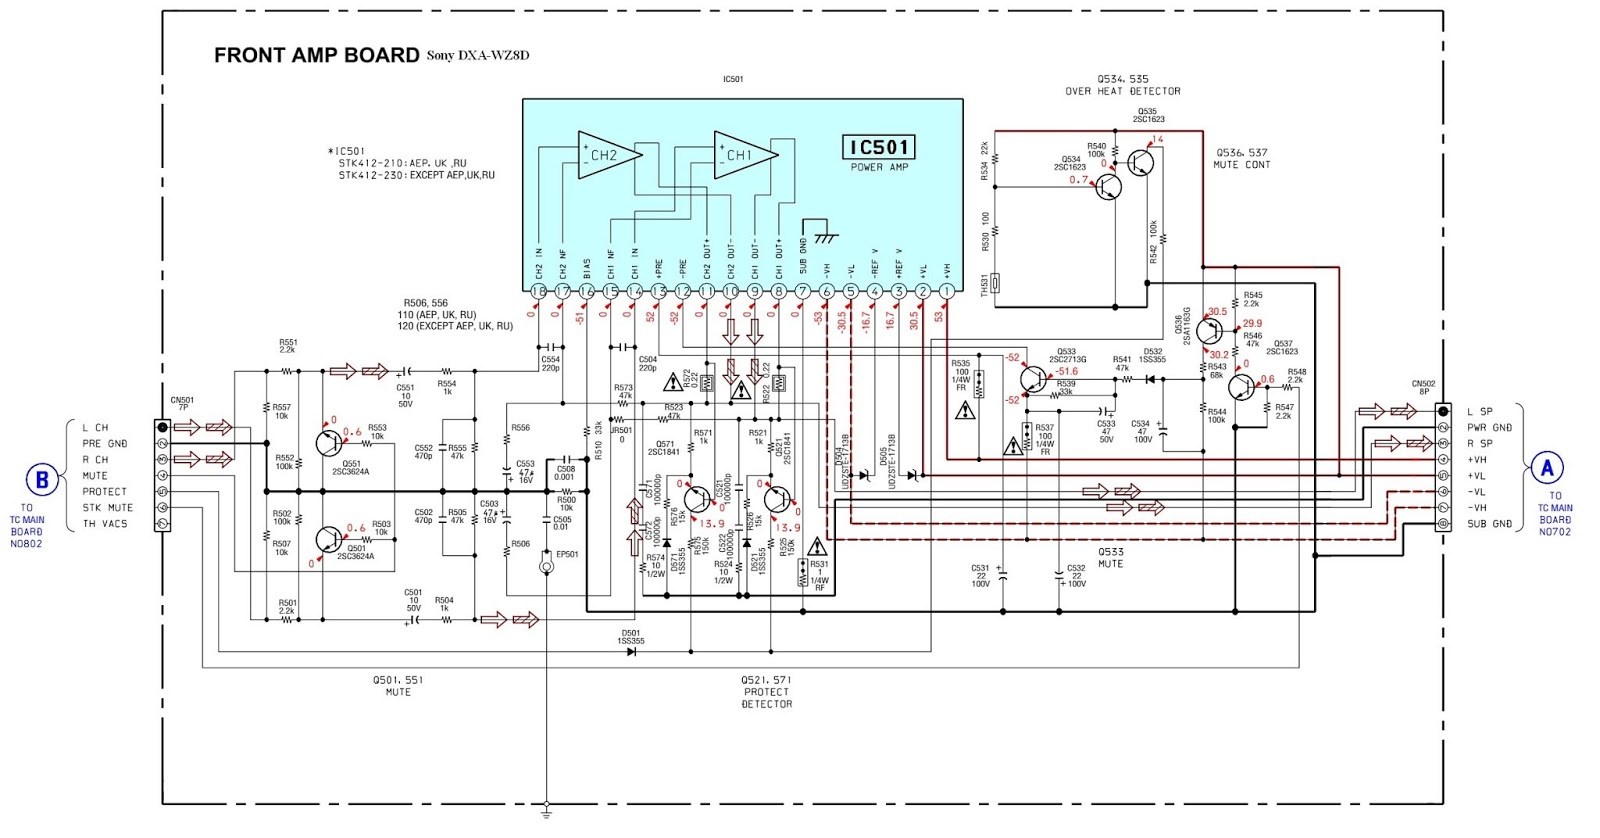 small resolution of sony dxa wz8d front amplifier board circuit diagram